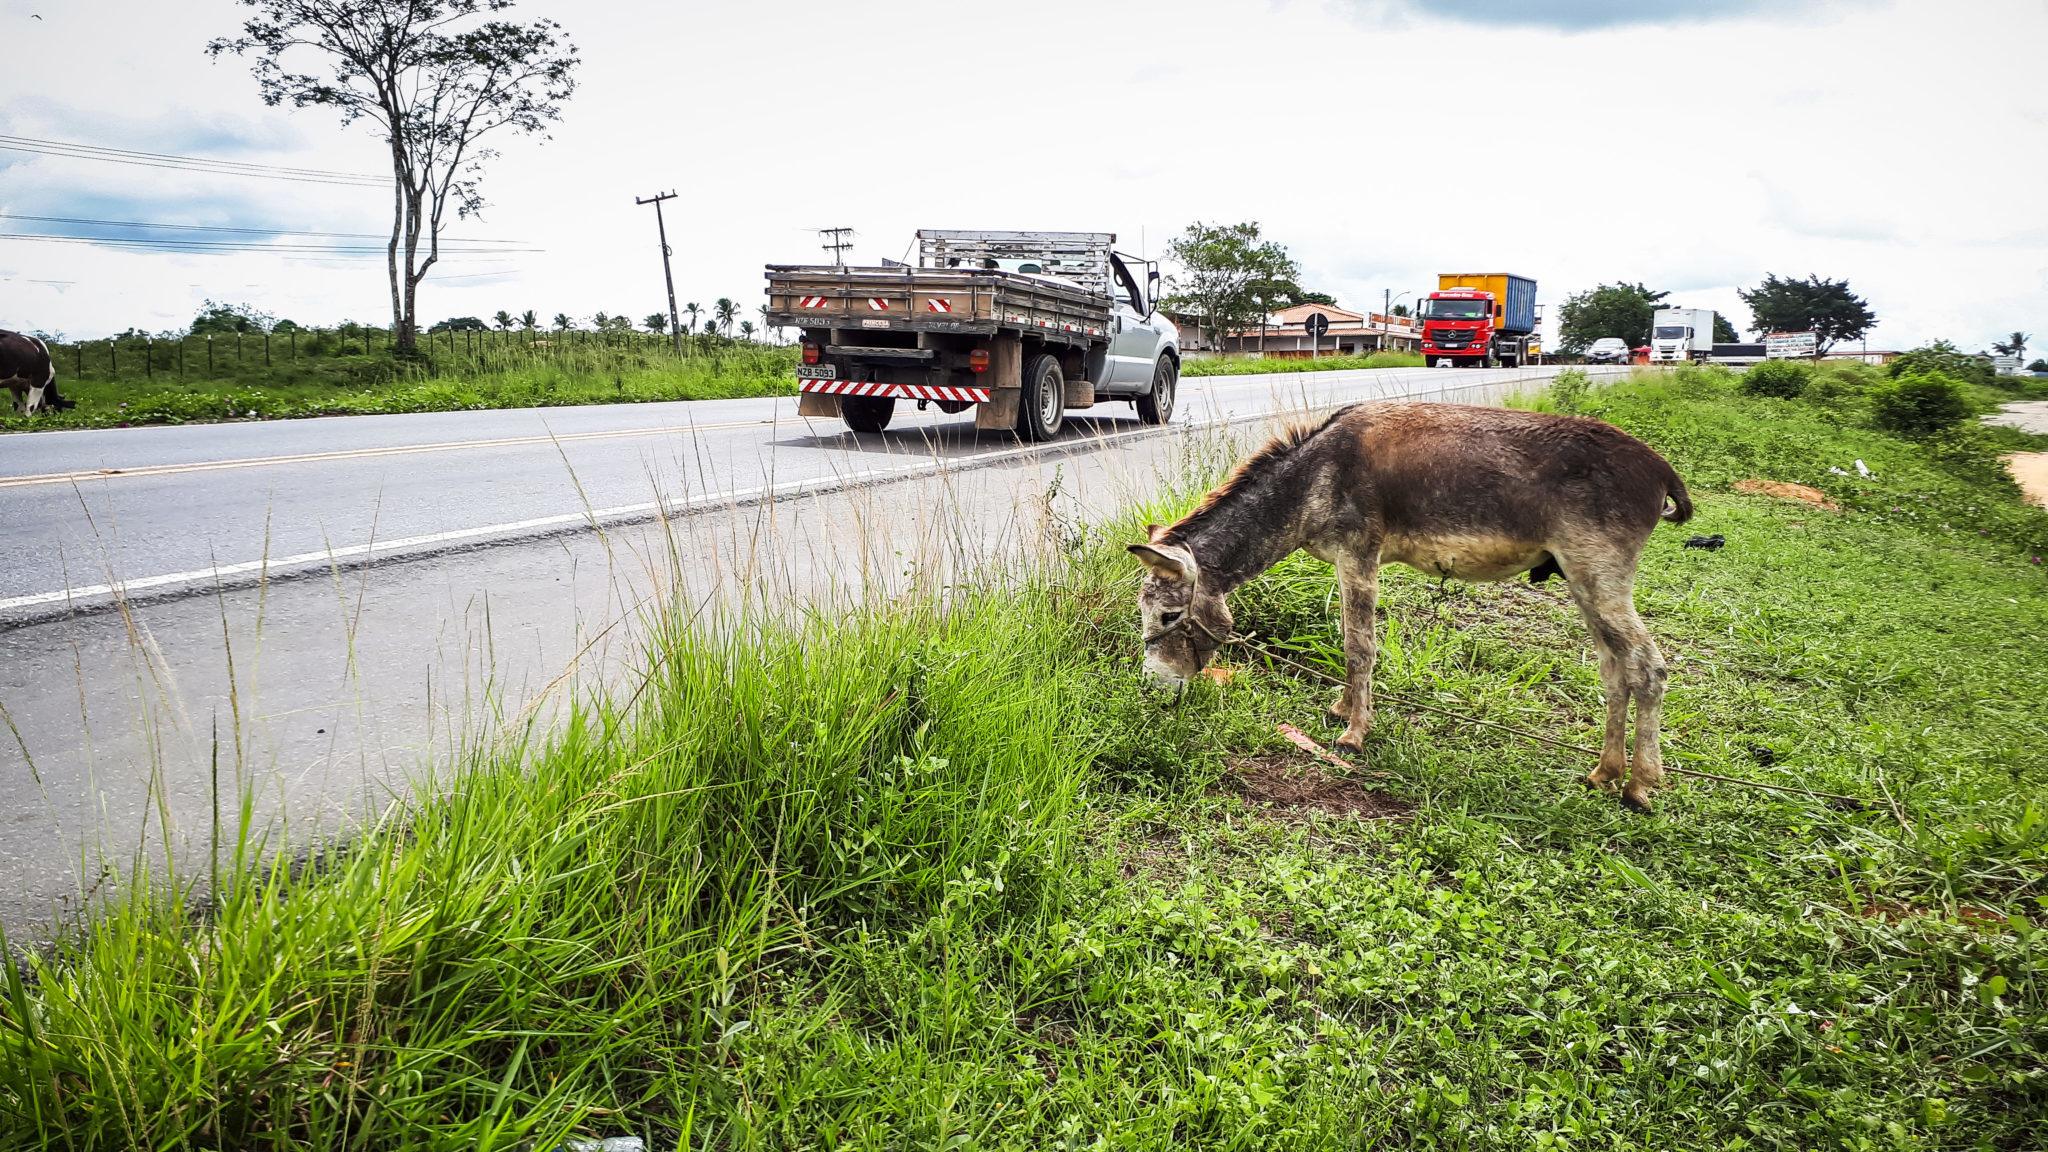 A donkey grazing at the side of the highway of Pernambuco, Brazil.